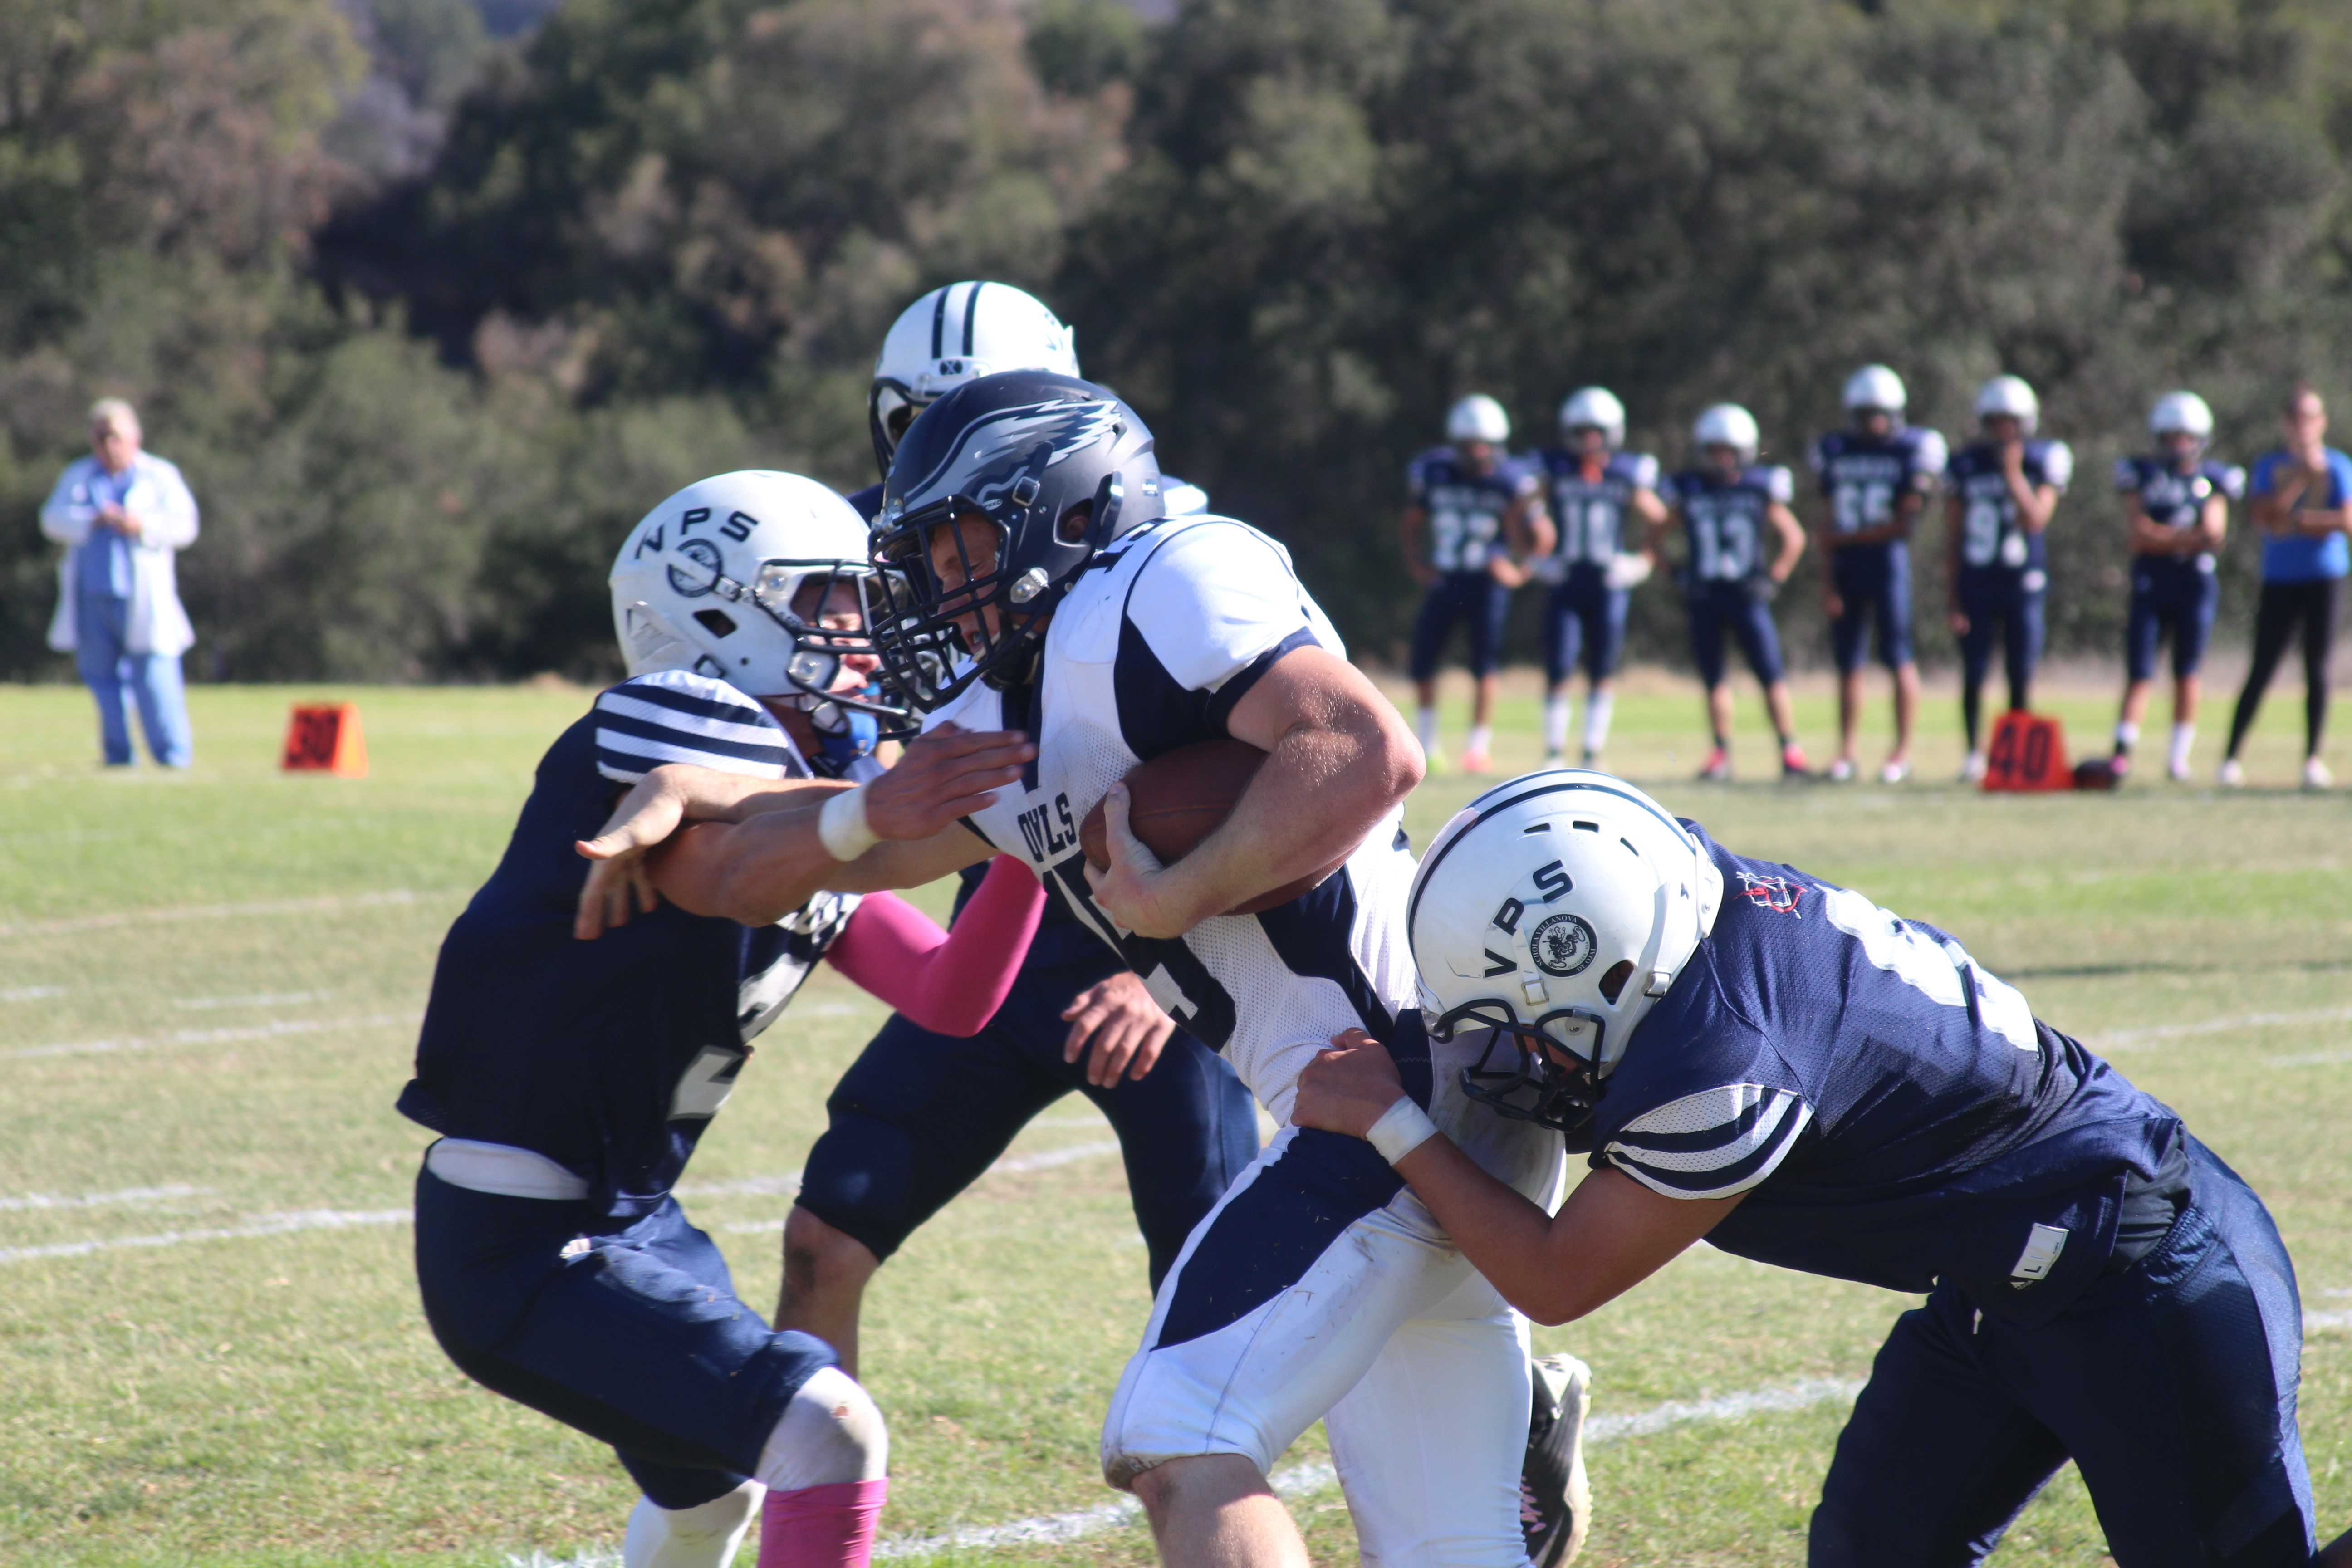 Undefeated Owls Make History on the Gridiron